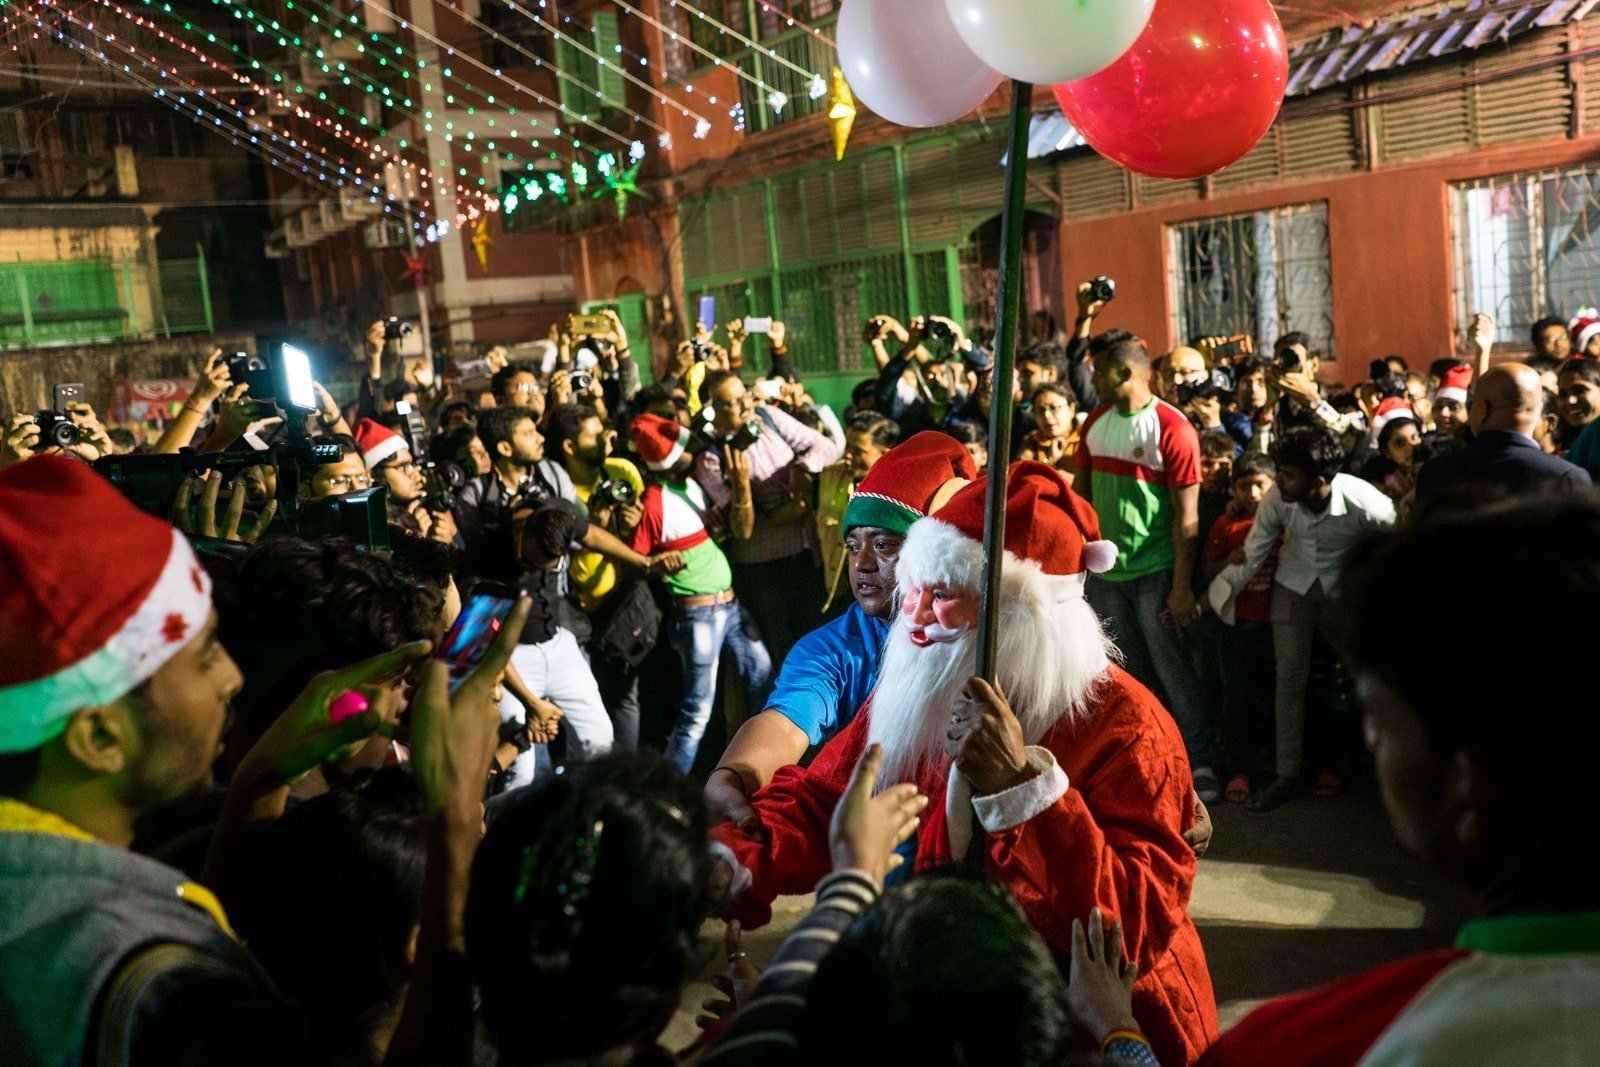 Celebrating Christmas in Kolkata, India - Elf pushing Santa in the crowd at Barracks - Lost With Purpose travel blog